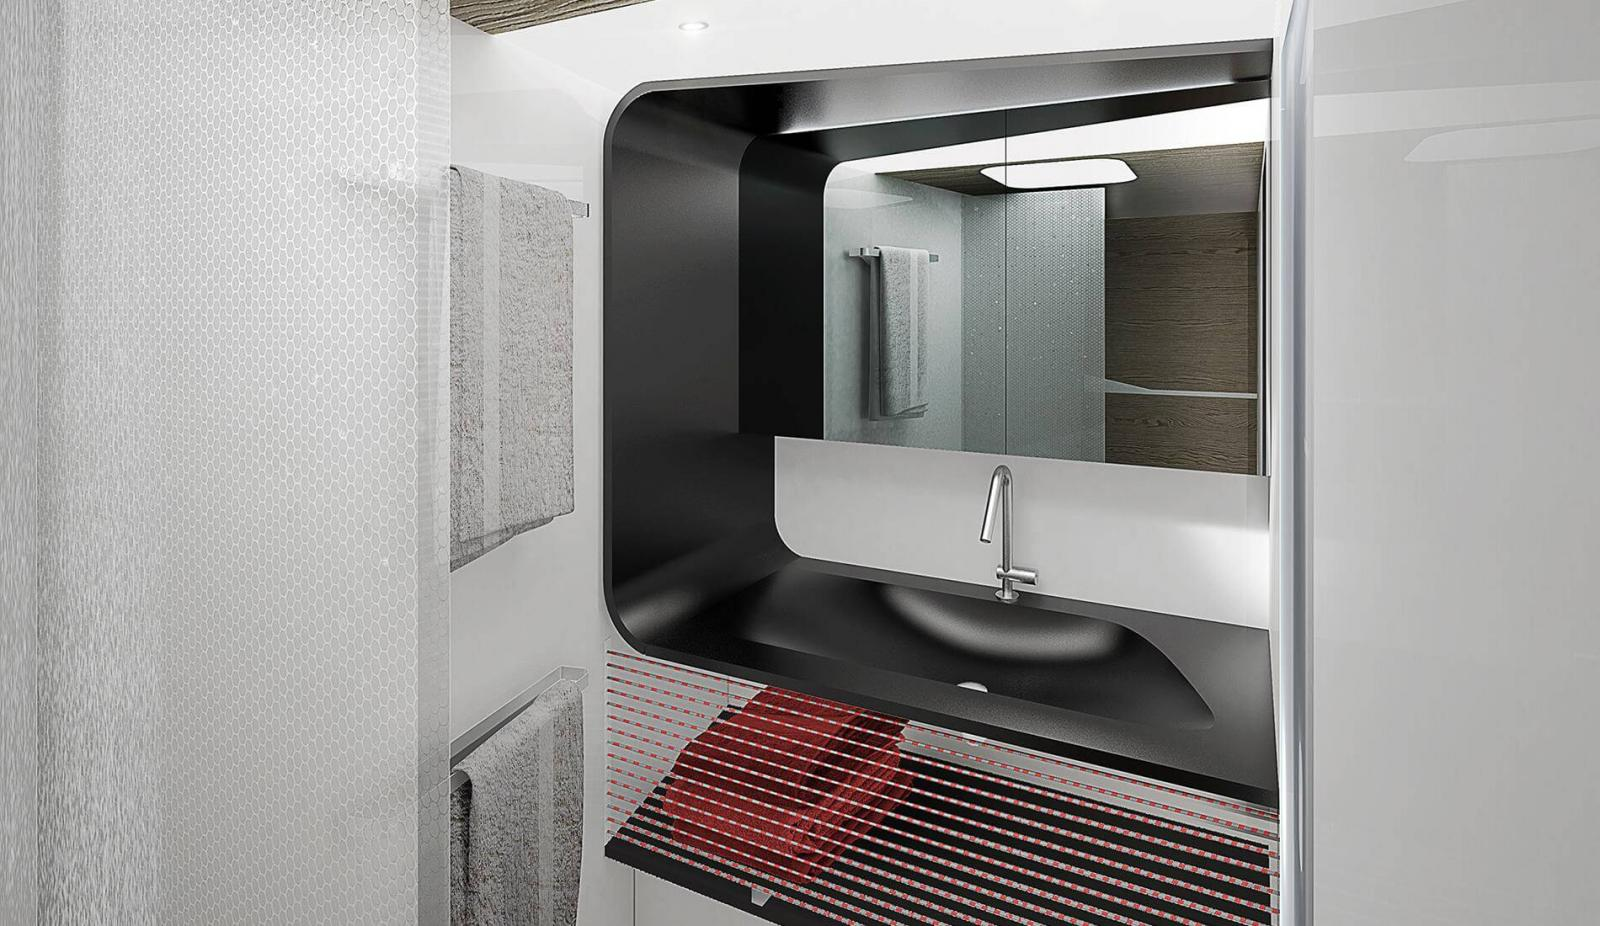 Wallycento Hull 4 Tango - Sailing Yacht - Bathroom